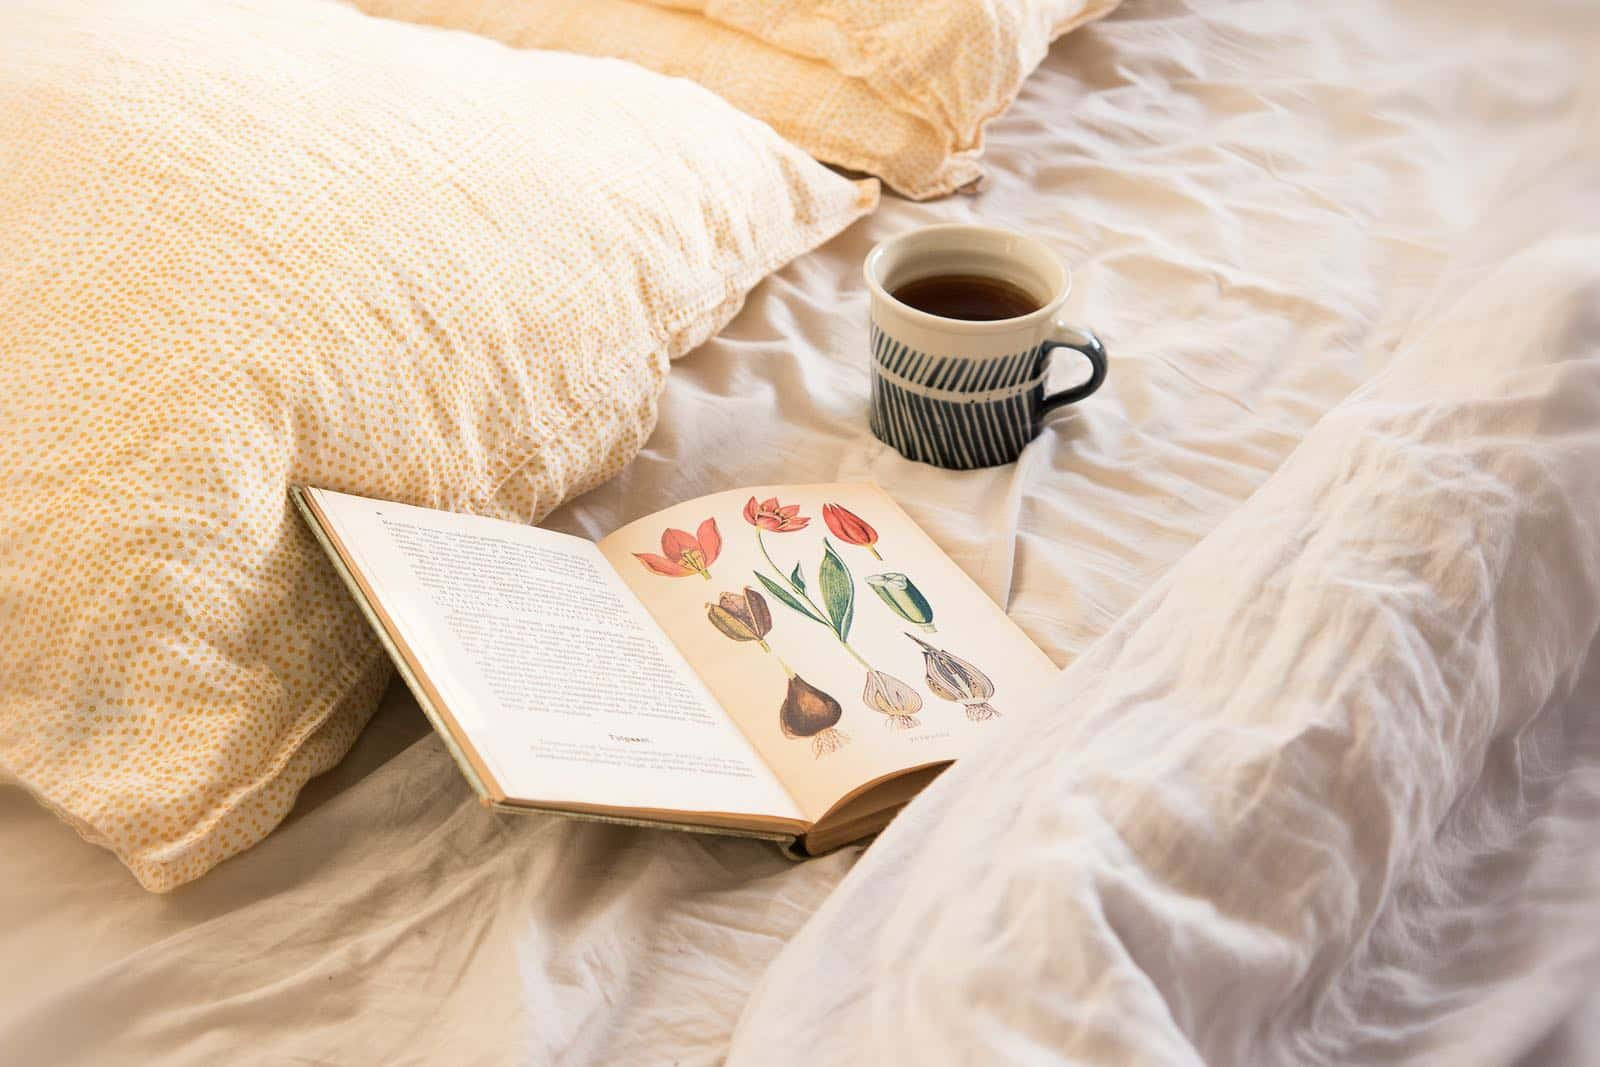 coffee and book in bed